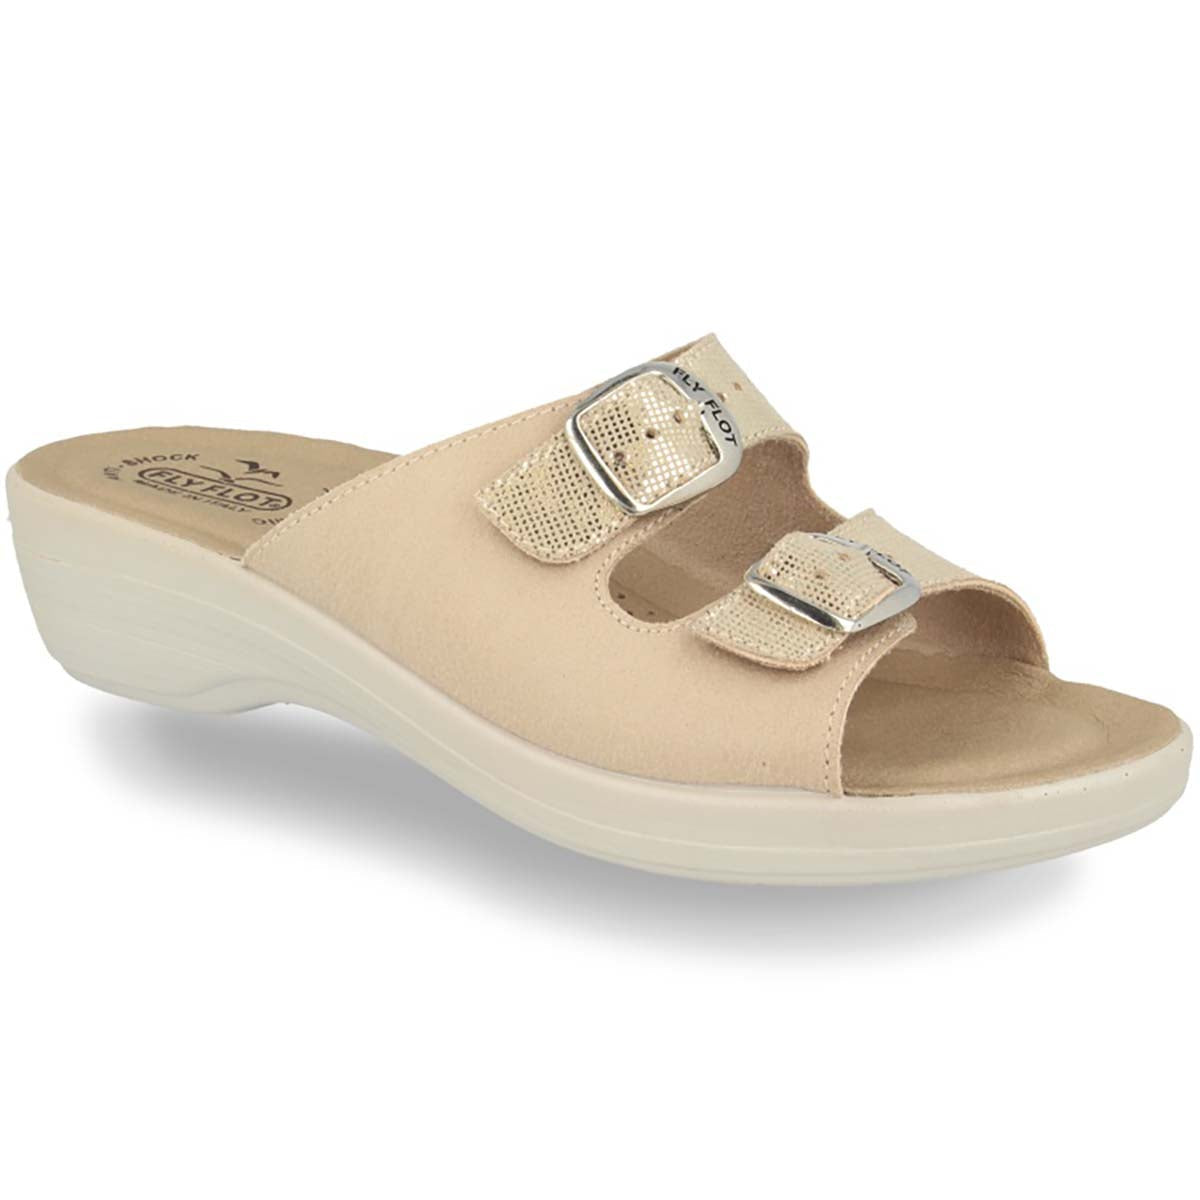 See photos Cloth Woman Slipper Beige (T5C336B)